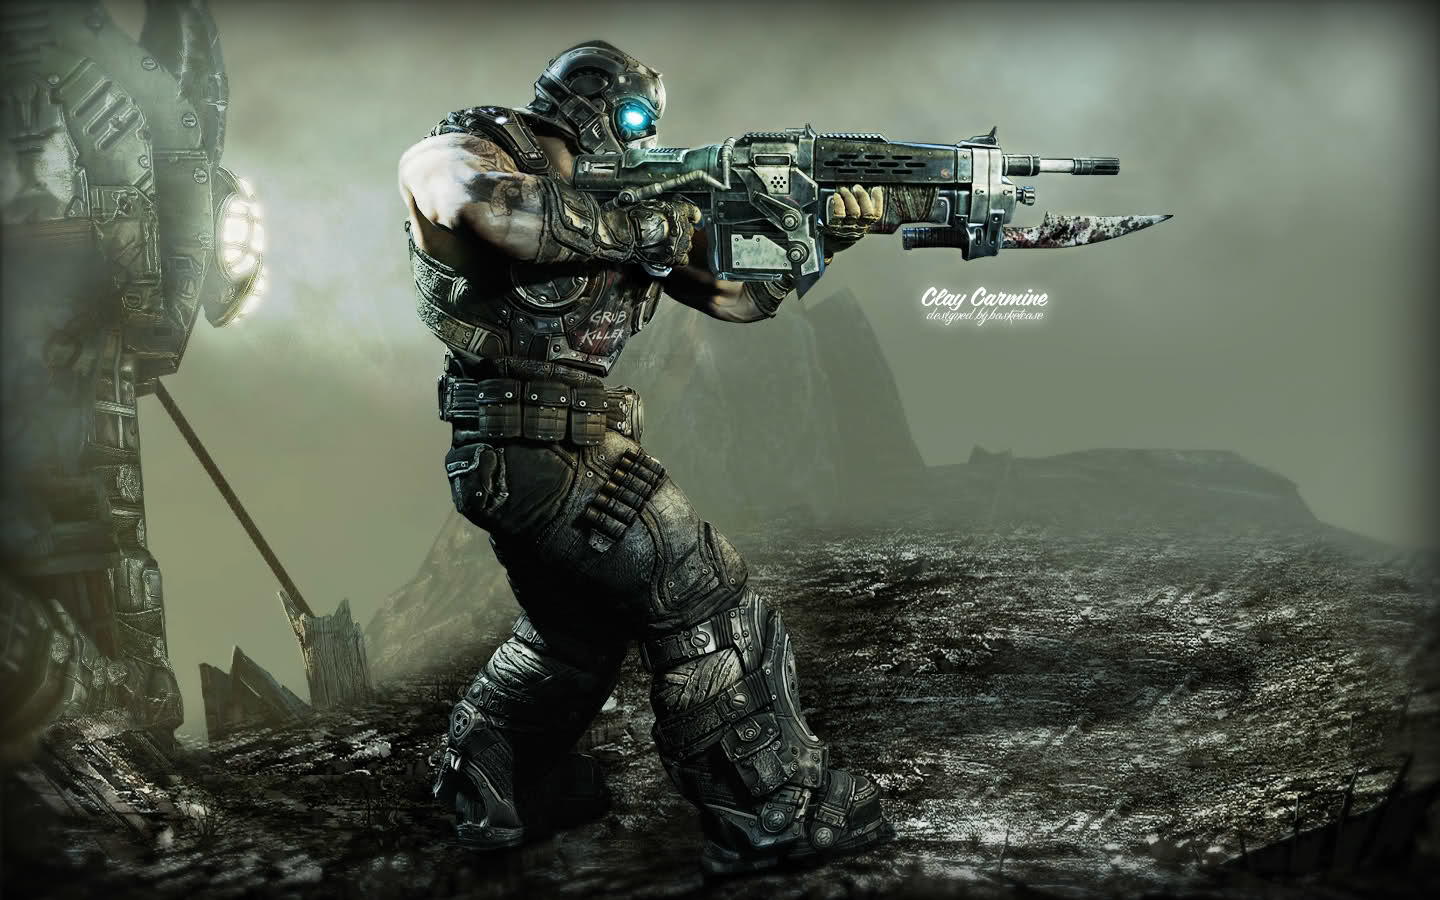 gears of war gears HD Wallpaper